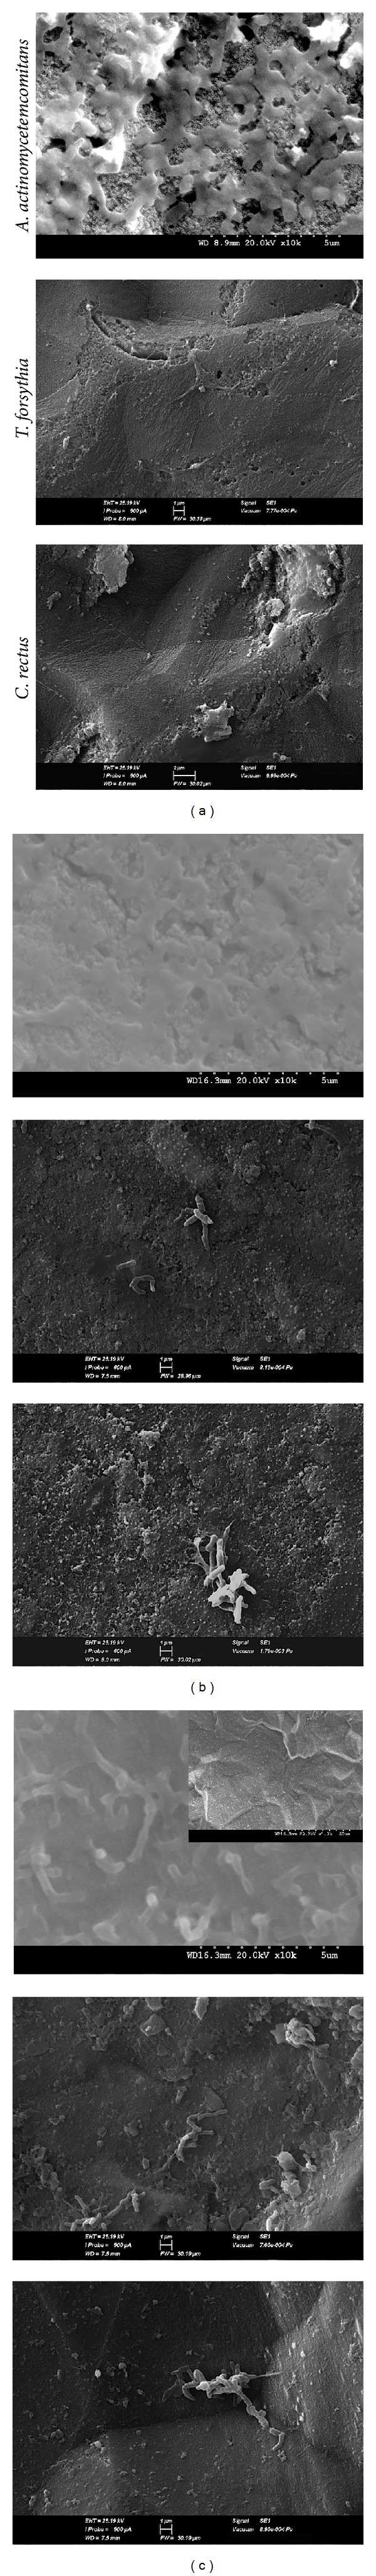 SEM micrographs after adhesion of A. actinomycetemcomitans , T. forsythia , and C. rectus on the surface of (a) Group TiO 2 : as-annealed TiO 2 nanotubes; (b) Group Ag: as-annealed Ag doped TiO 2 nanotubes; (c) Group Ti: commercially pure Ti sheet.